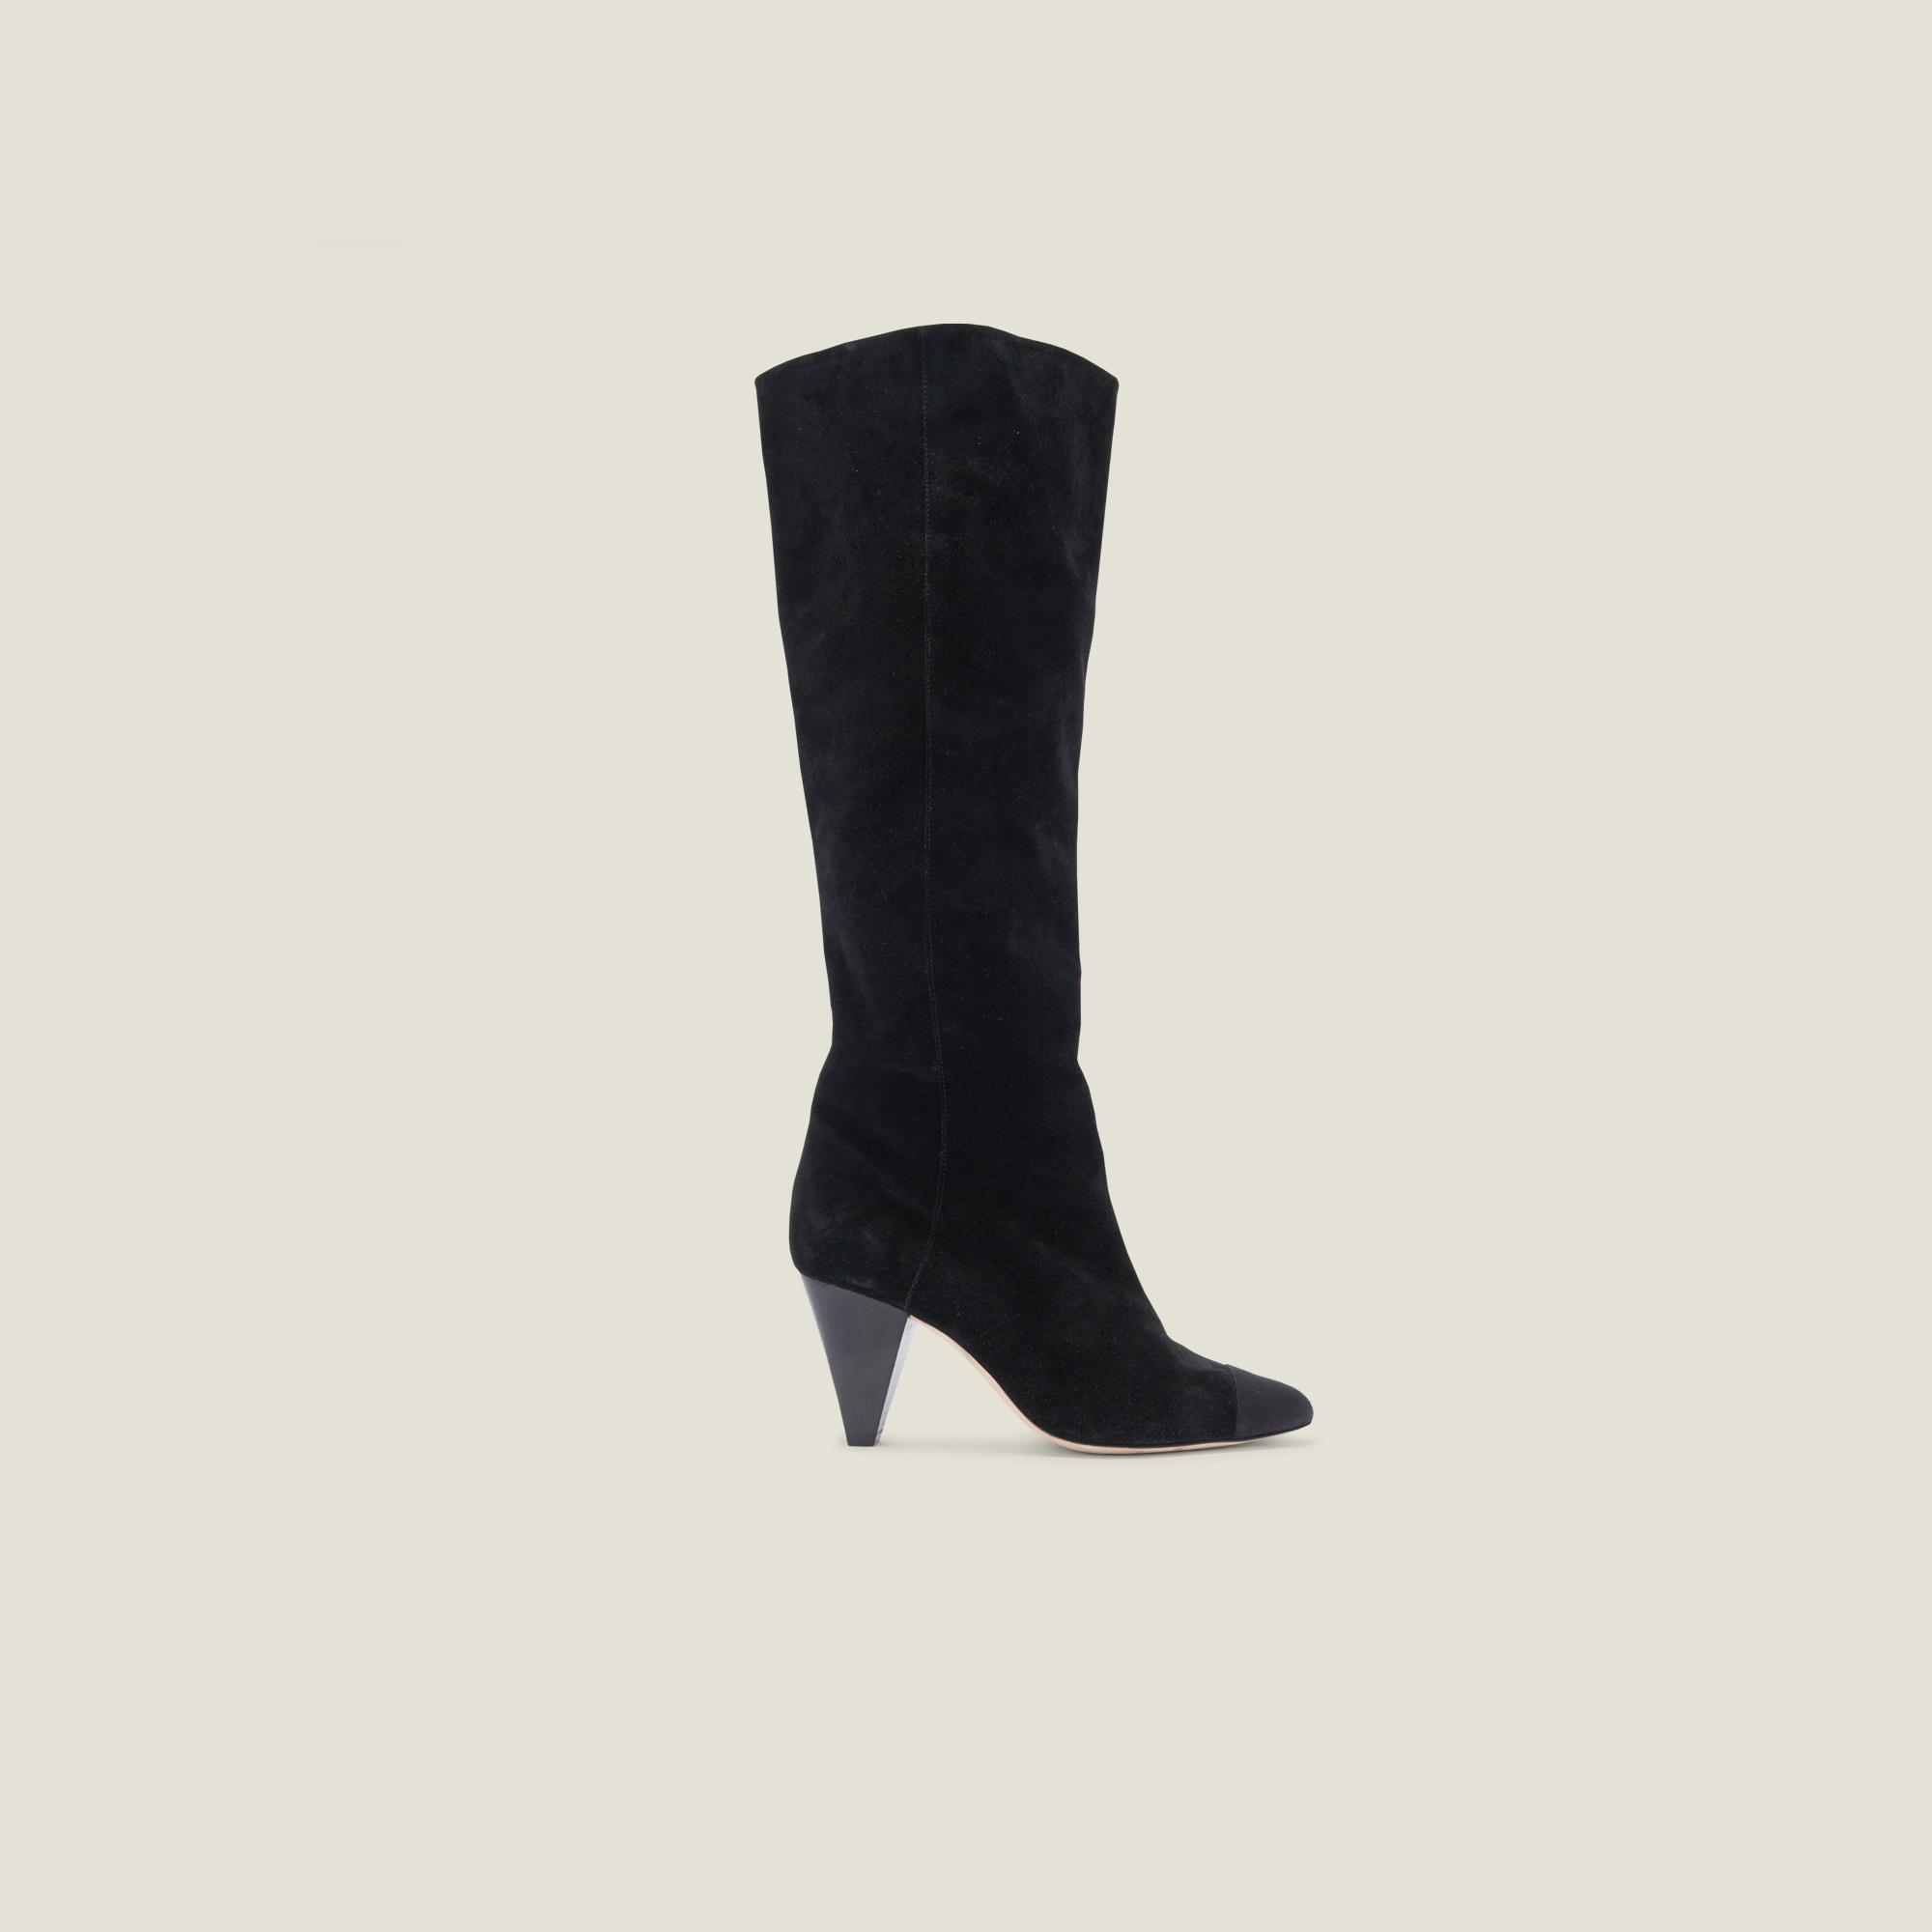 Leather boots with pointed toe